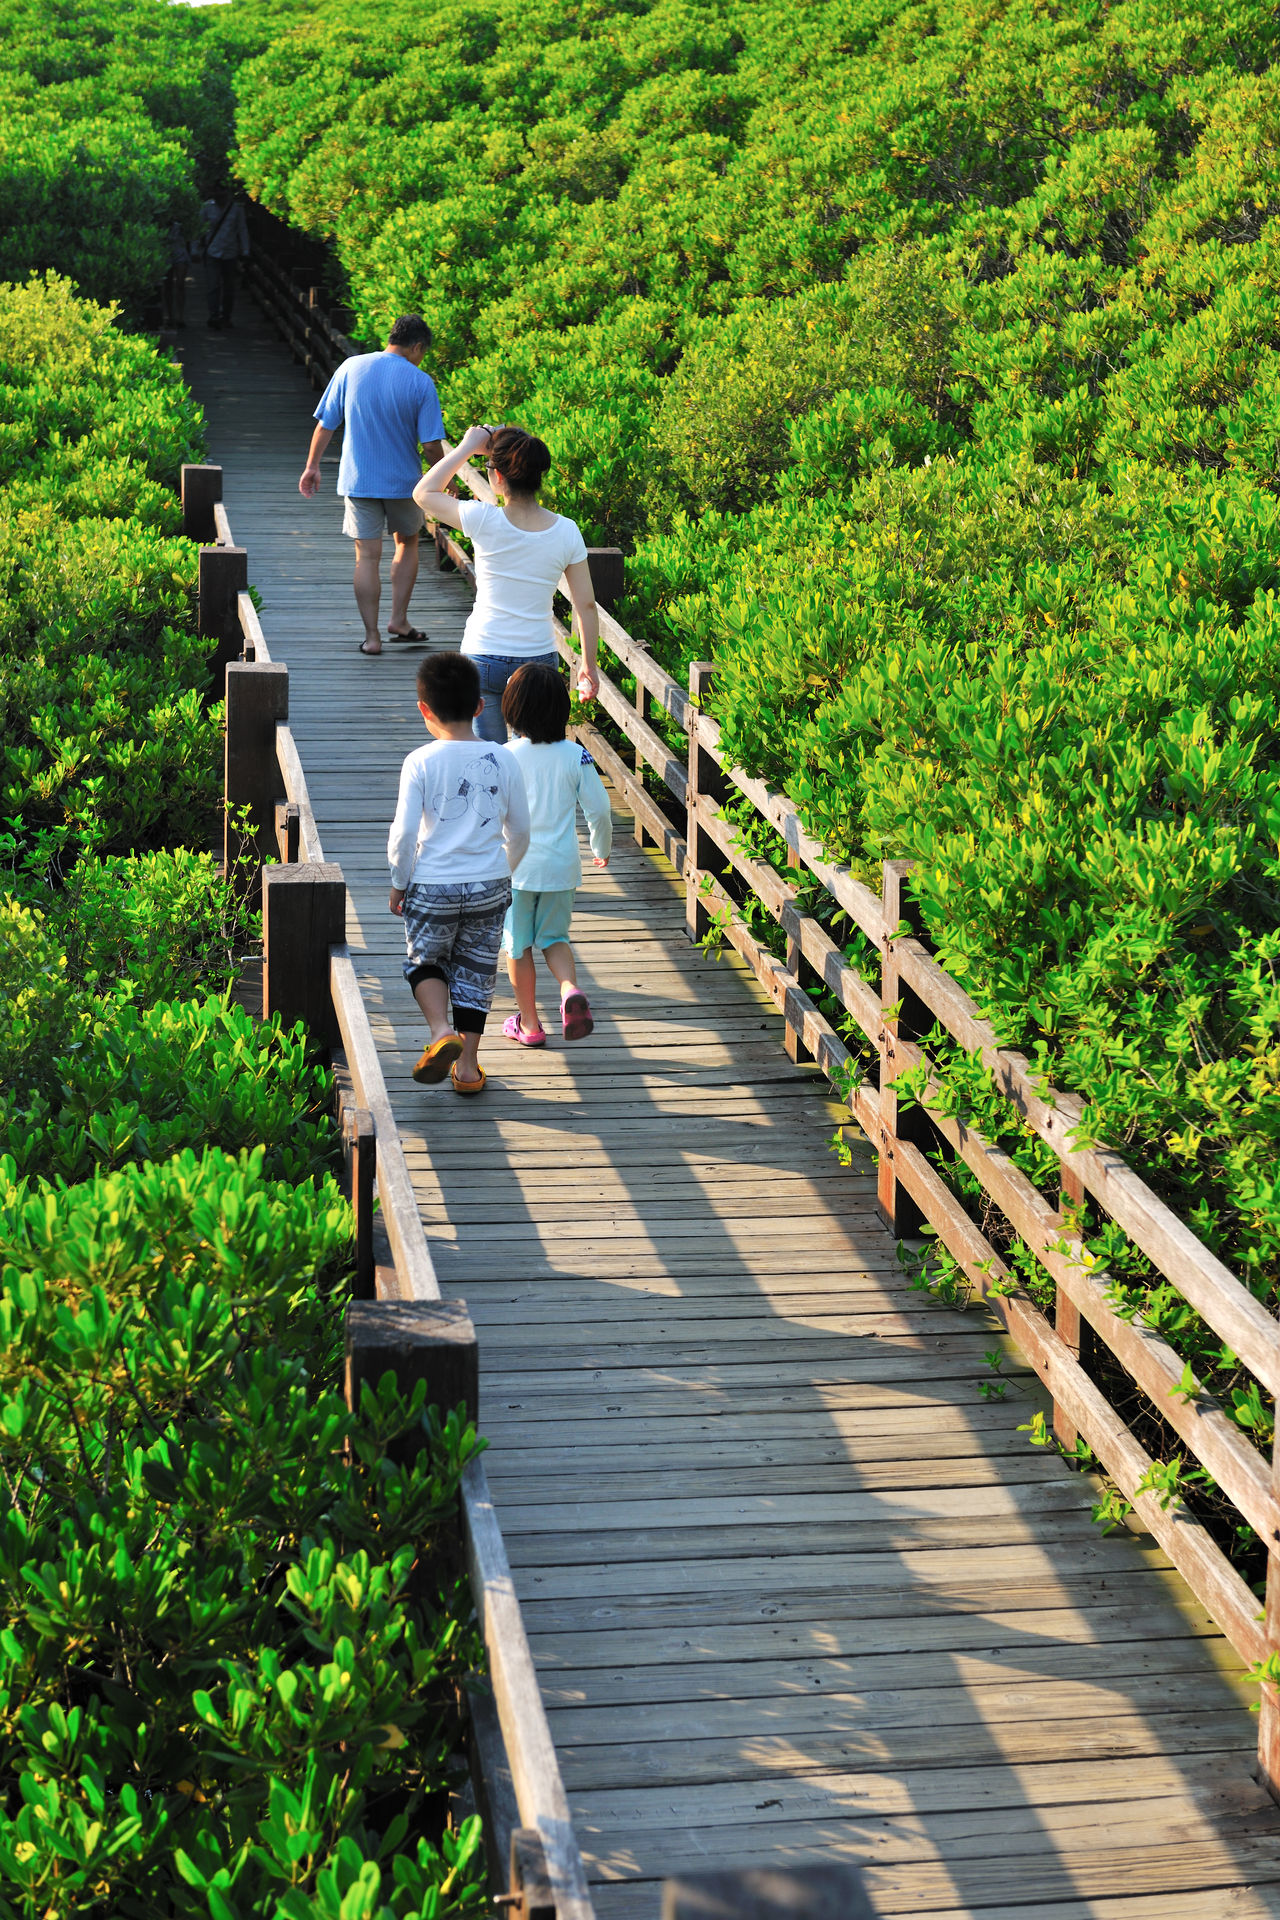 life Adult Bridge Child Community Day Ecology Females Go Sightseeing Large Group Of People Life Nature Outdoors Park People Road Take A Walk Togetherness Travel Tree Women Wood